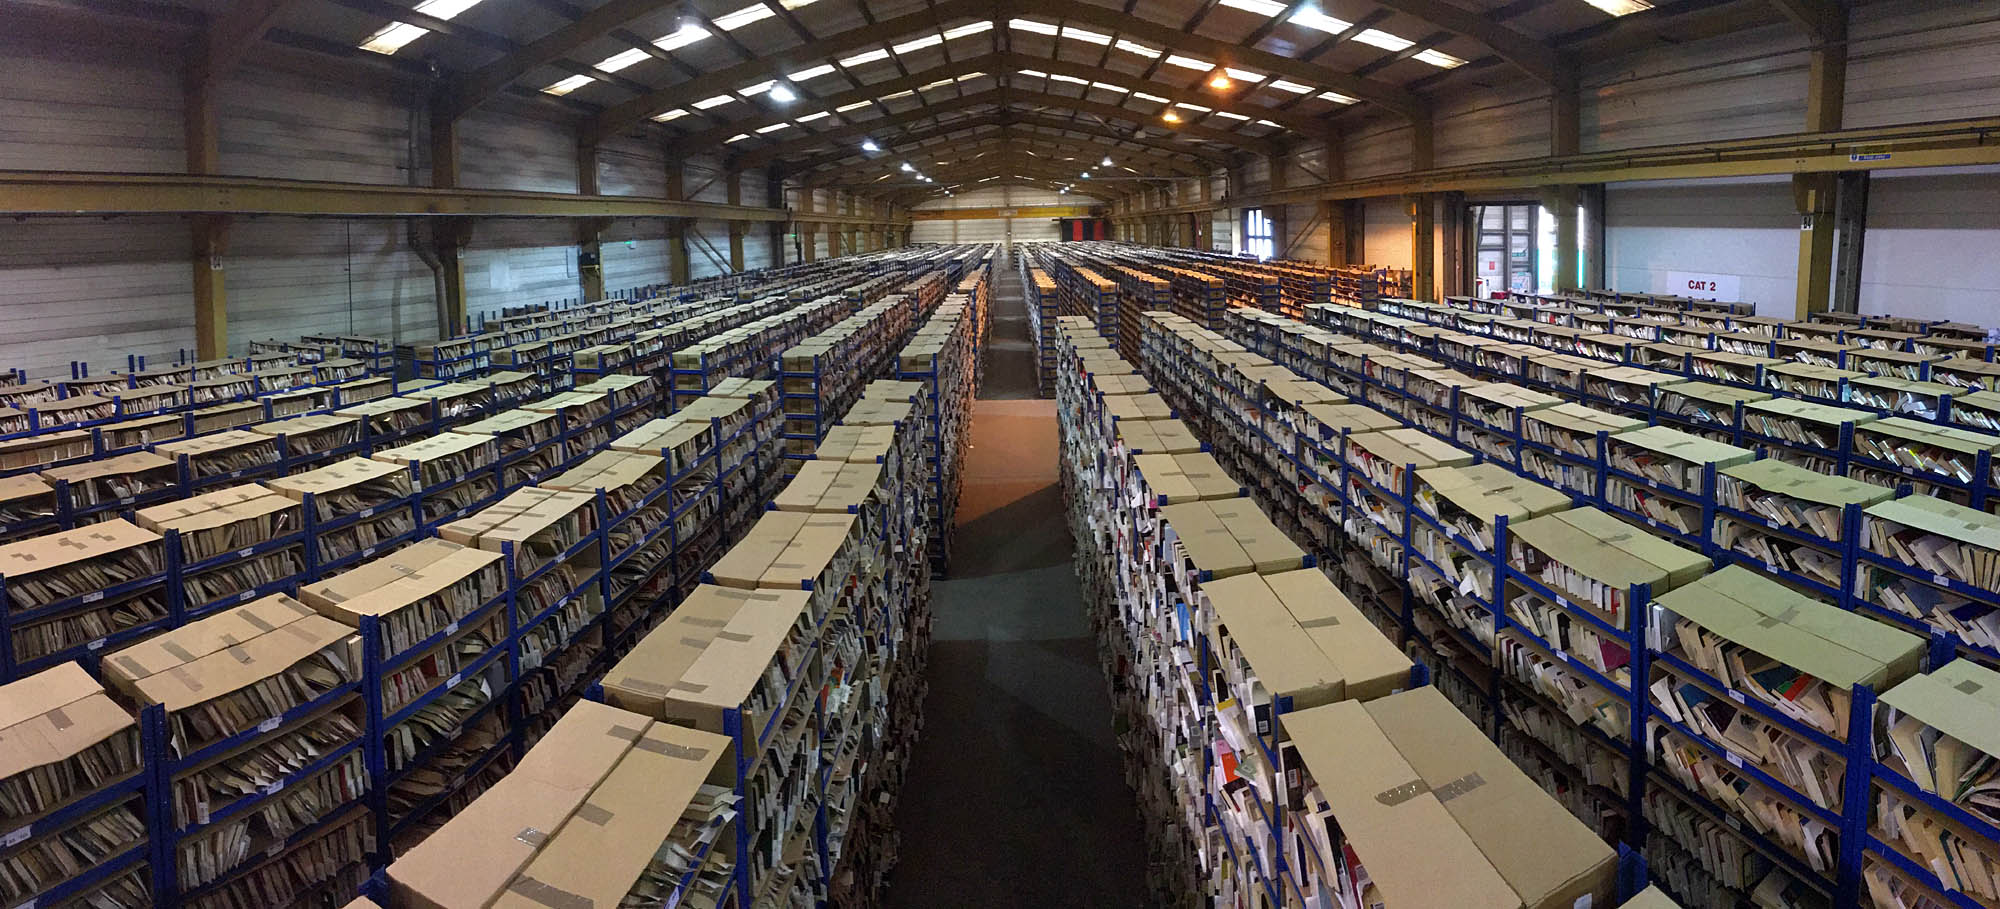 goldstone books huge warehouse of second hand books